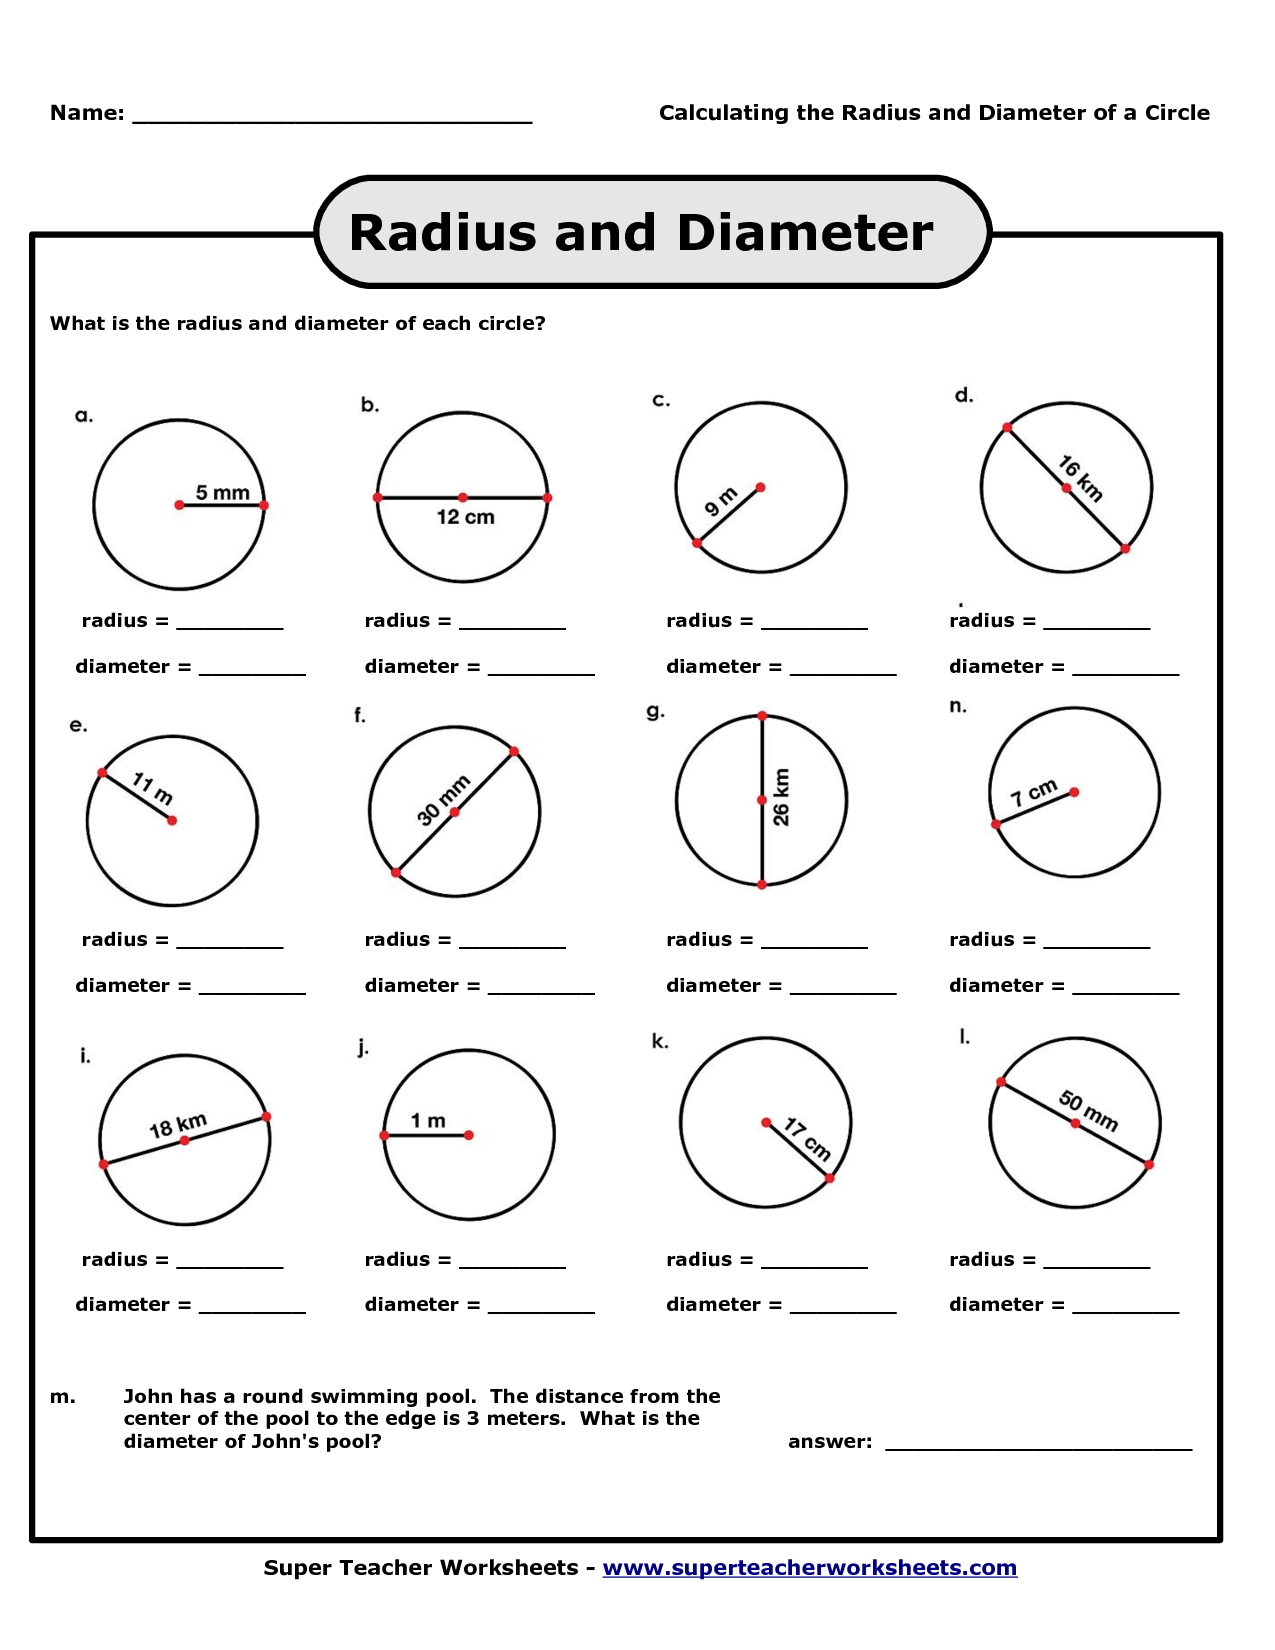 Radius And Diameter Pictures To Pin